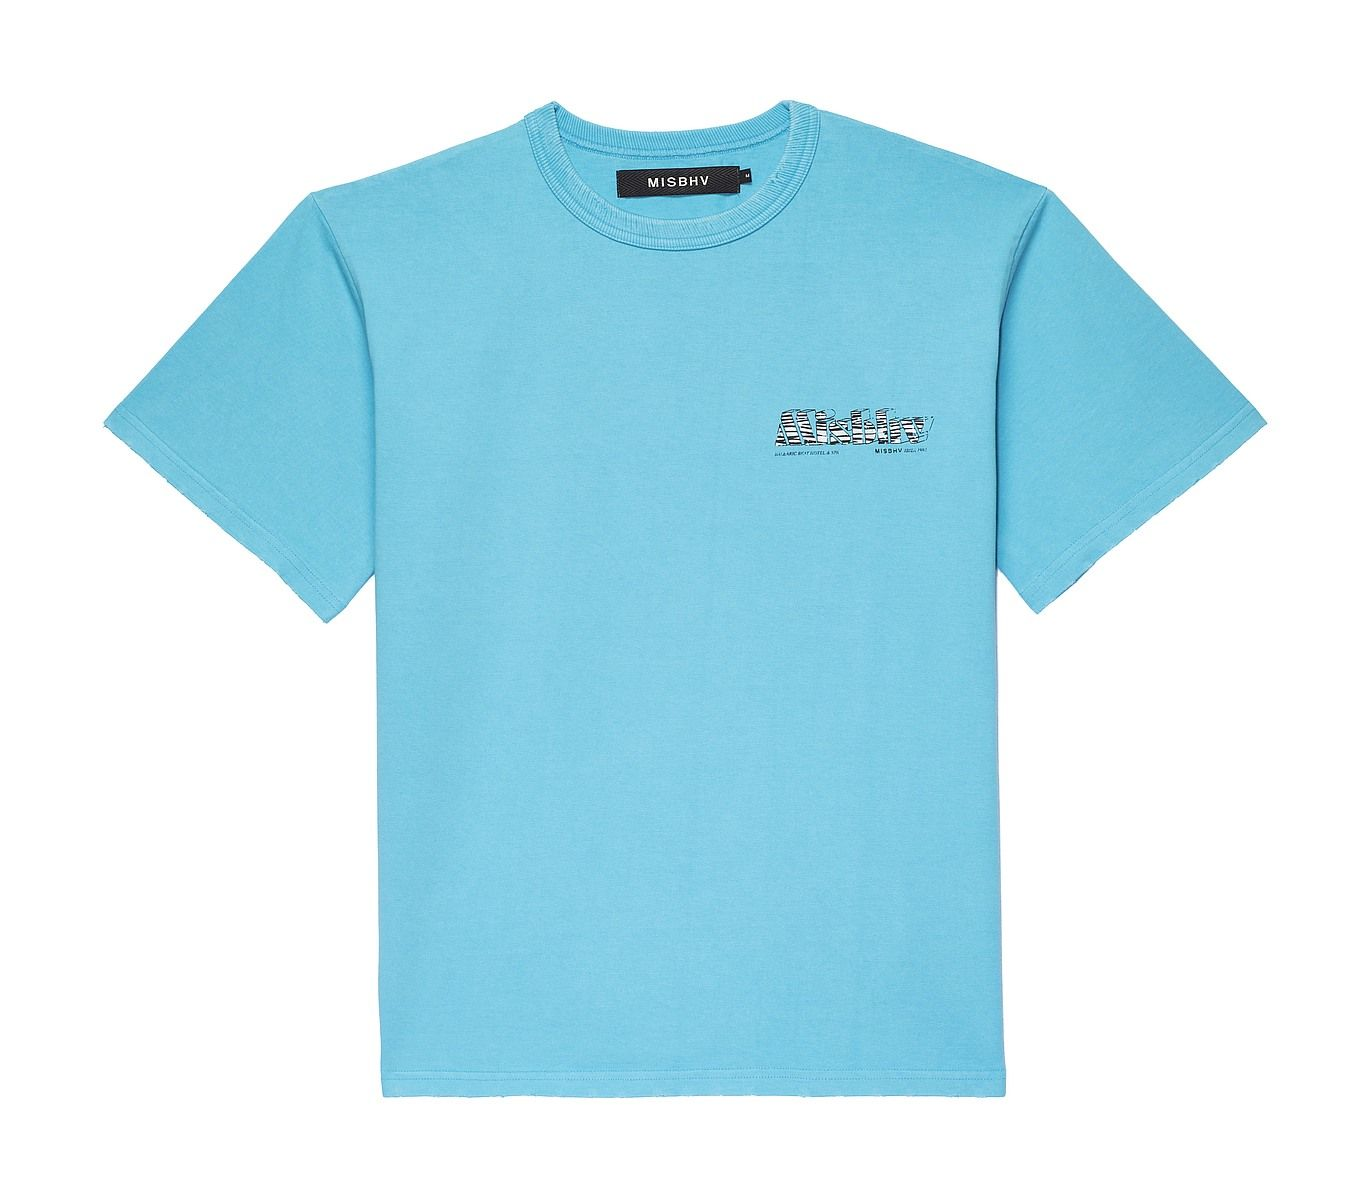 The MBH Hotel & SPA T-shirt Turquoise